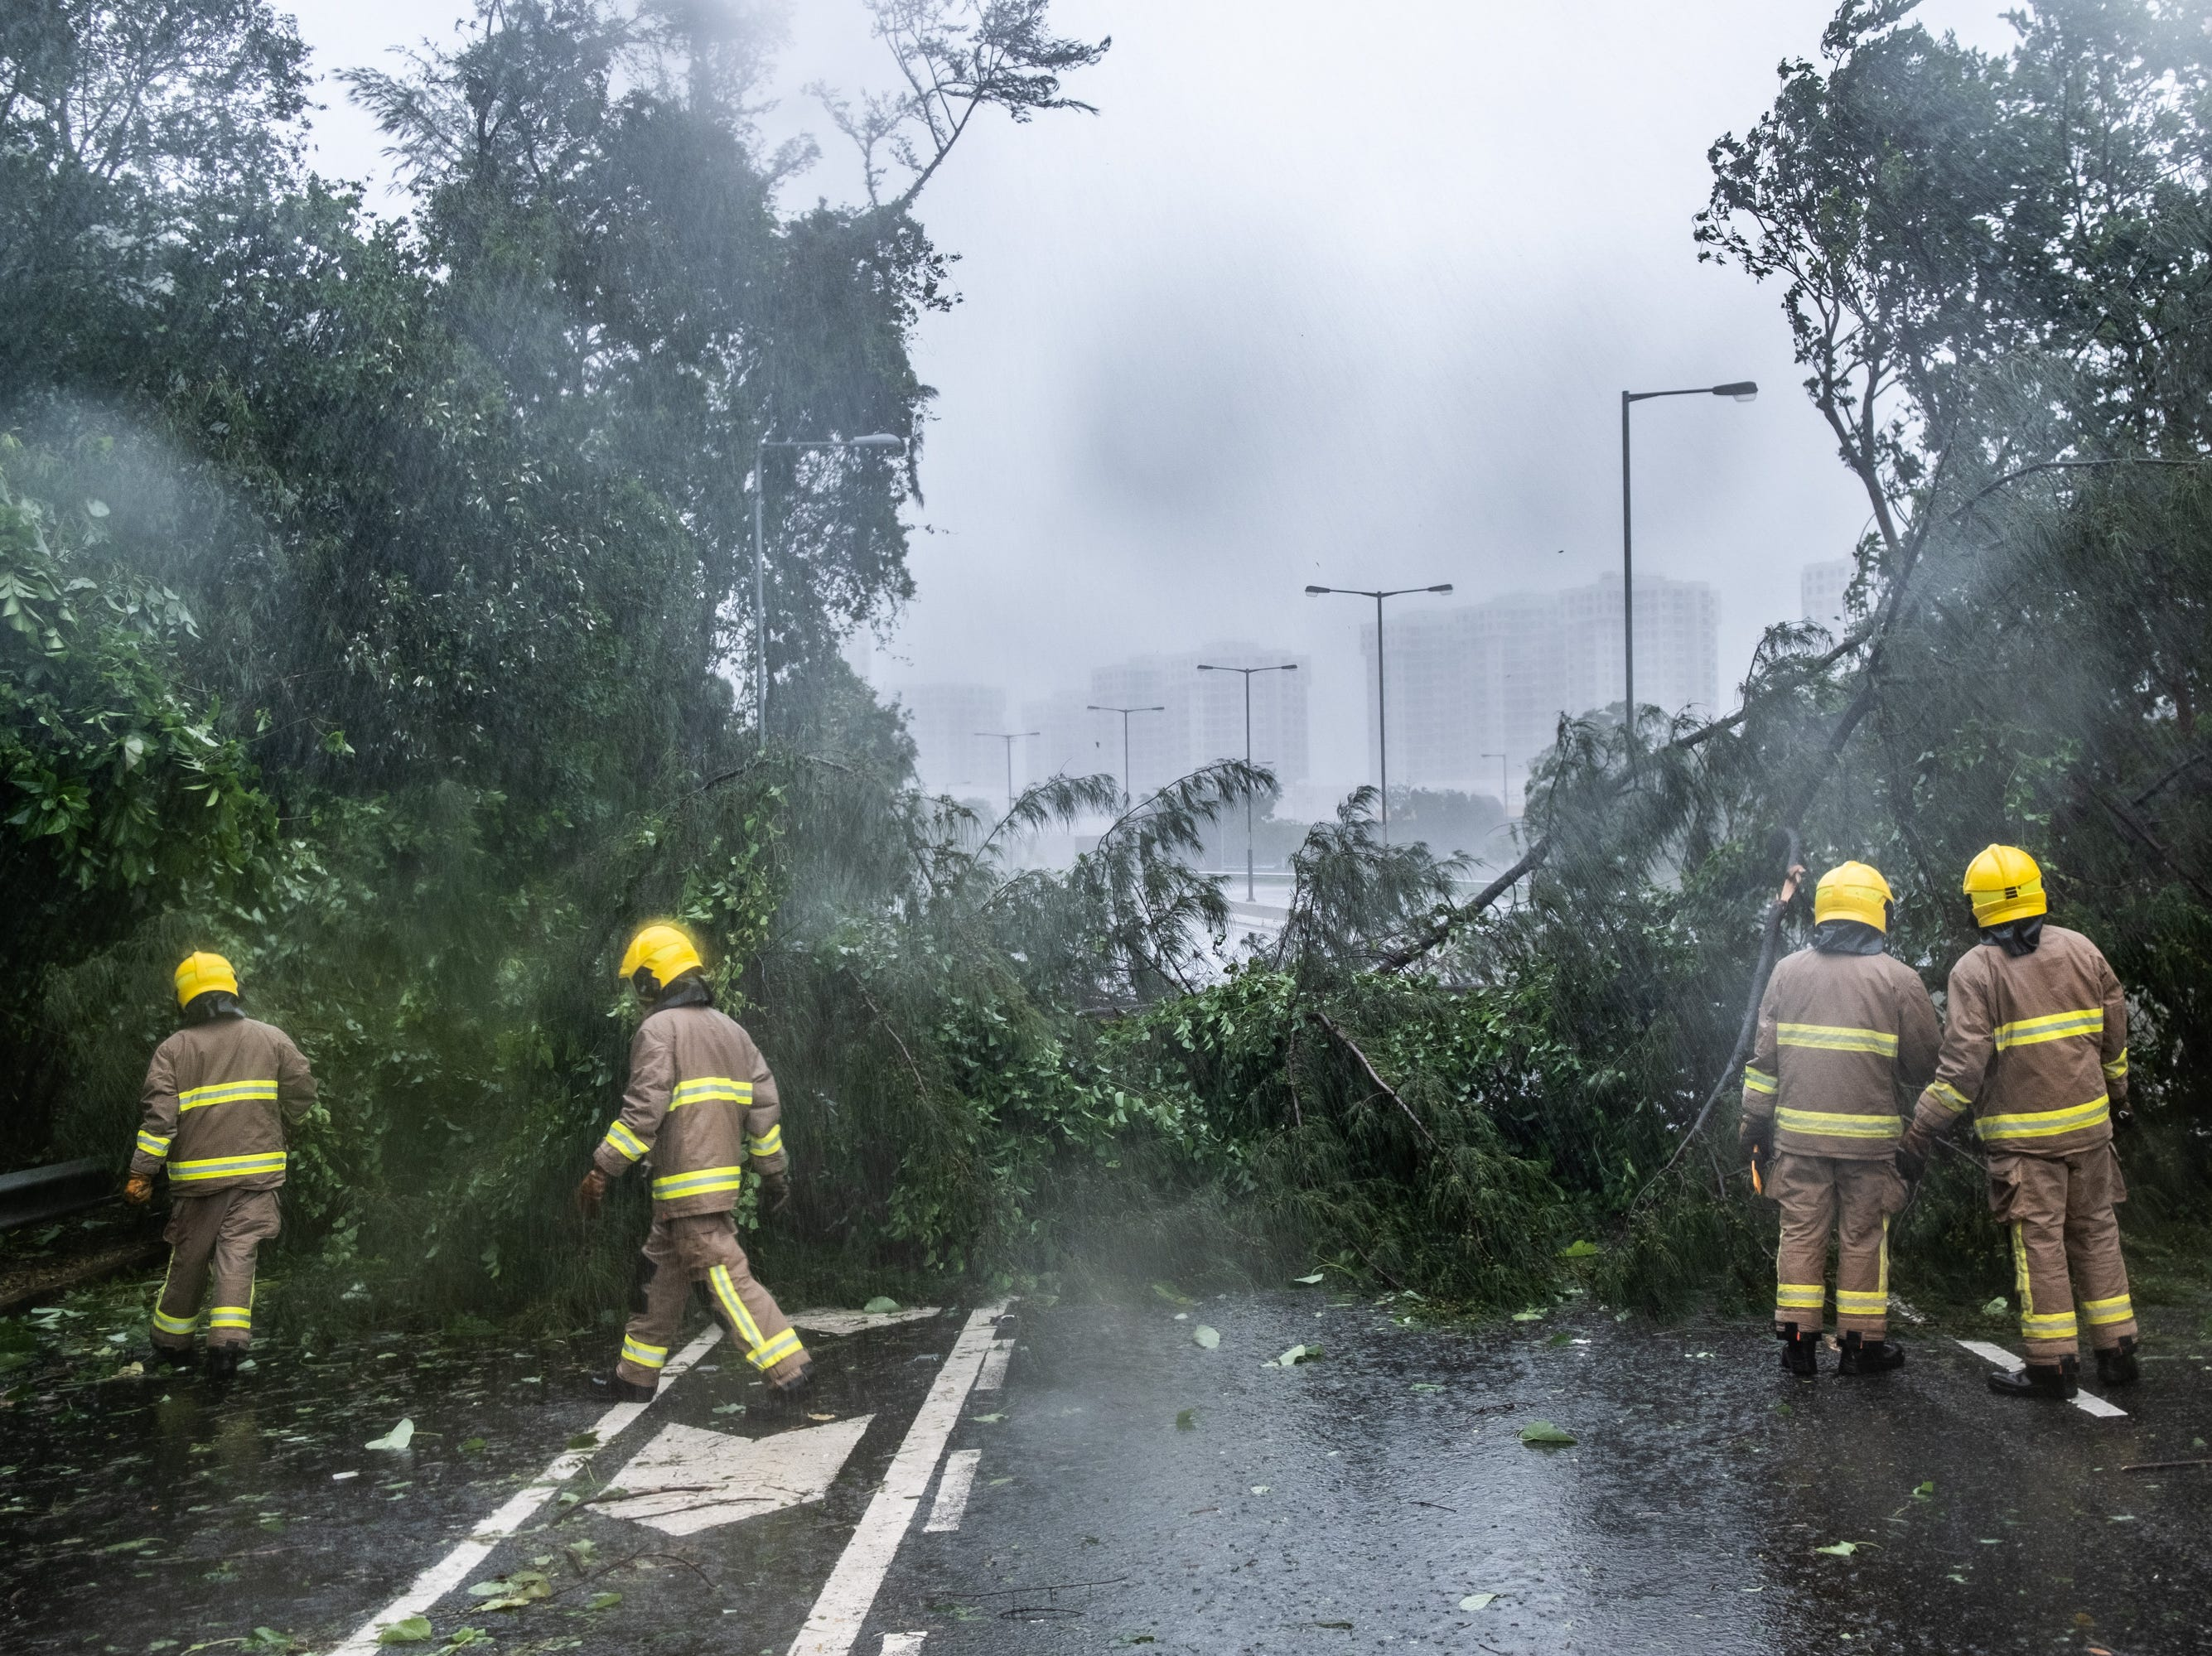 Firefighters remove the debris on the road on Sept. 16, 2018 in Hong Kong.